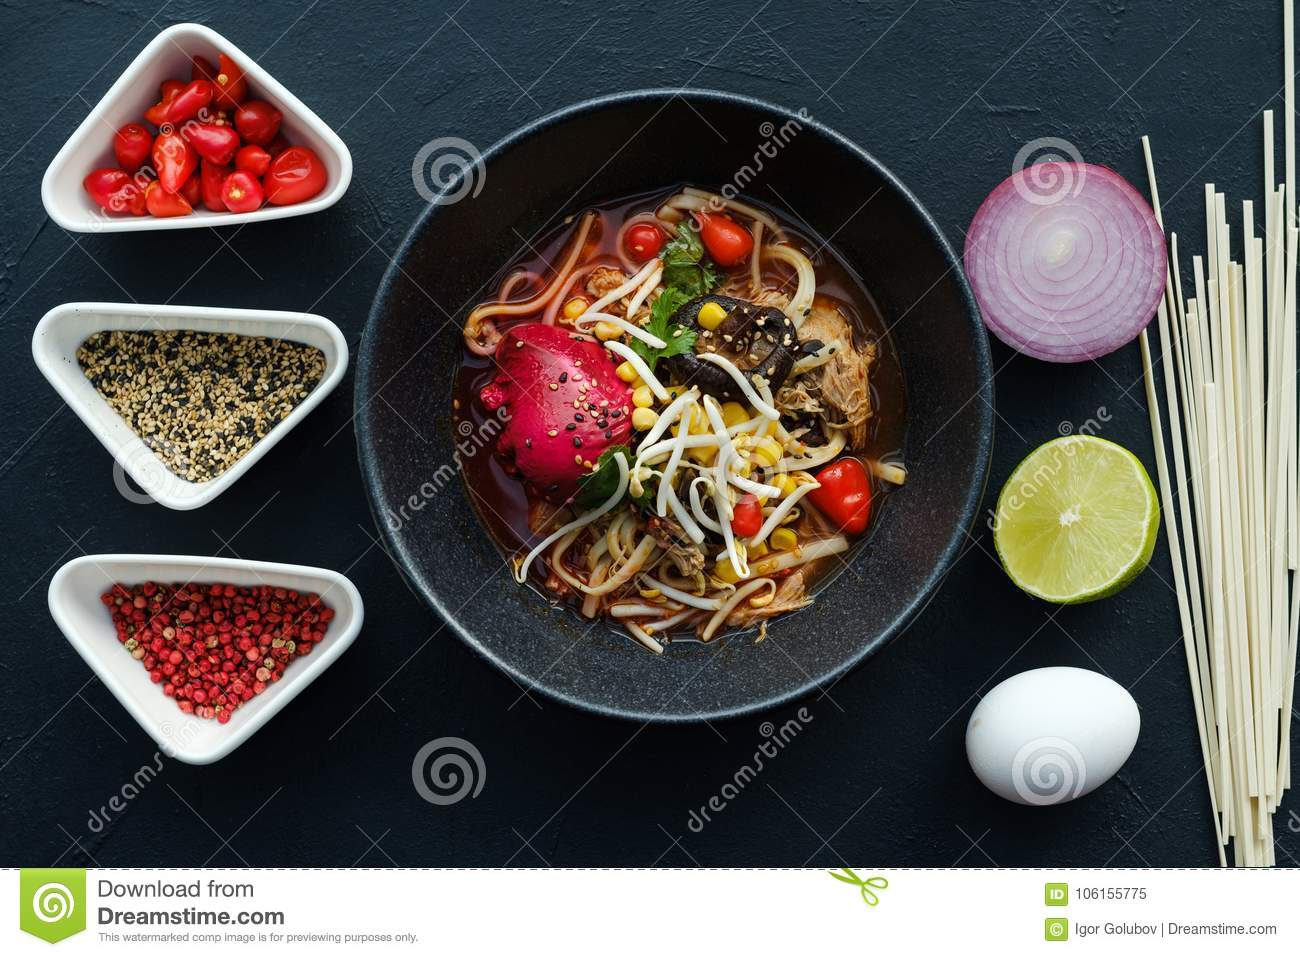 Ramen homemade recipe chinese fast food meal stock image image of download comp forumfinder Choice Image